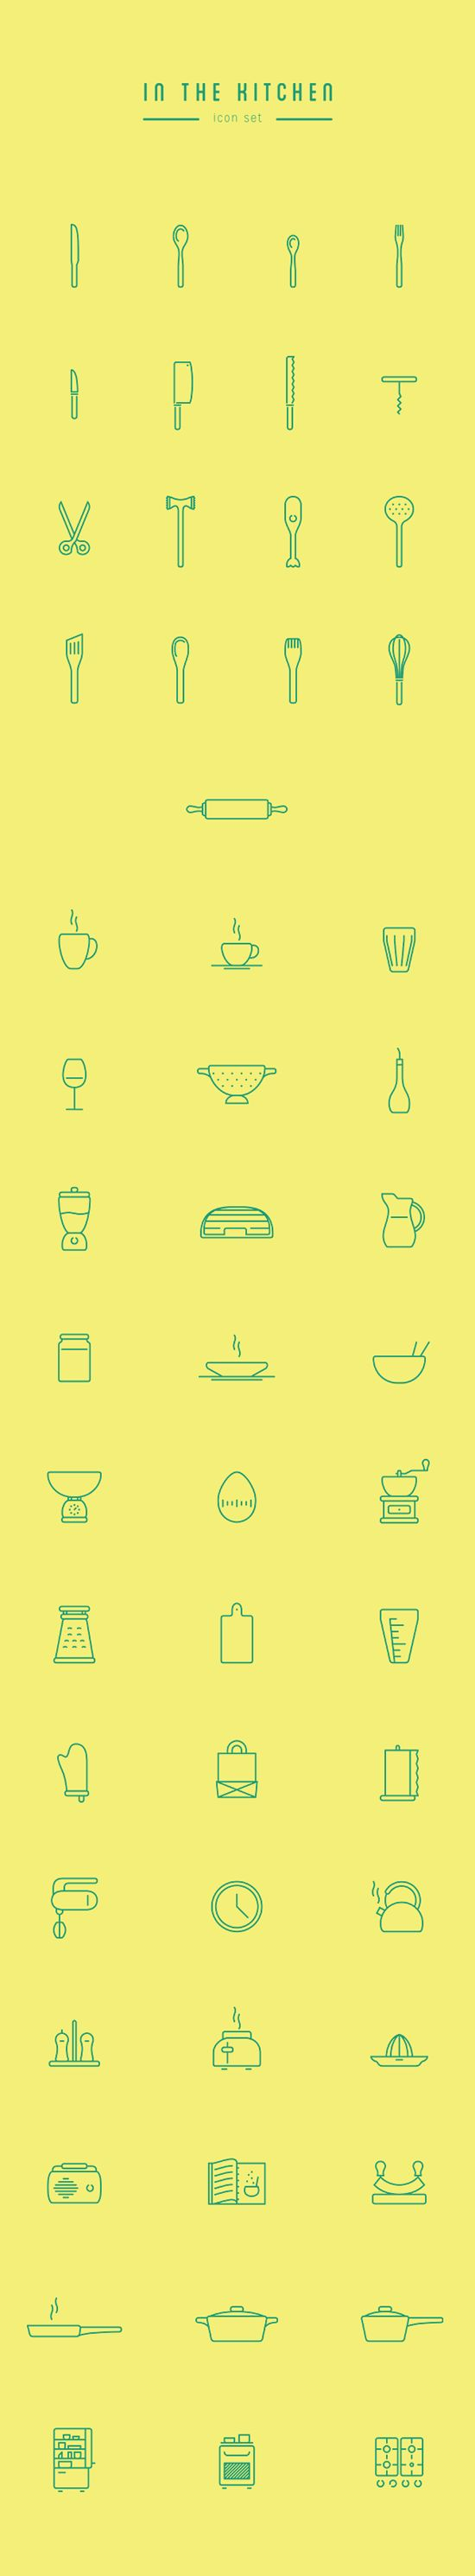 In The Kitchen – Free Icon Set by Wojciech Zasina